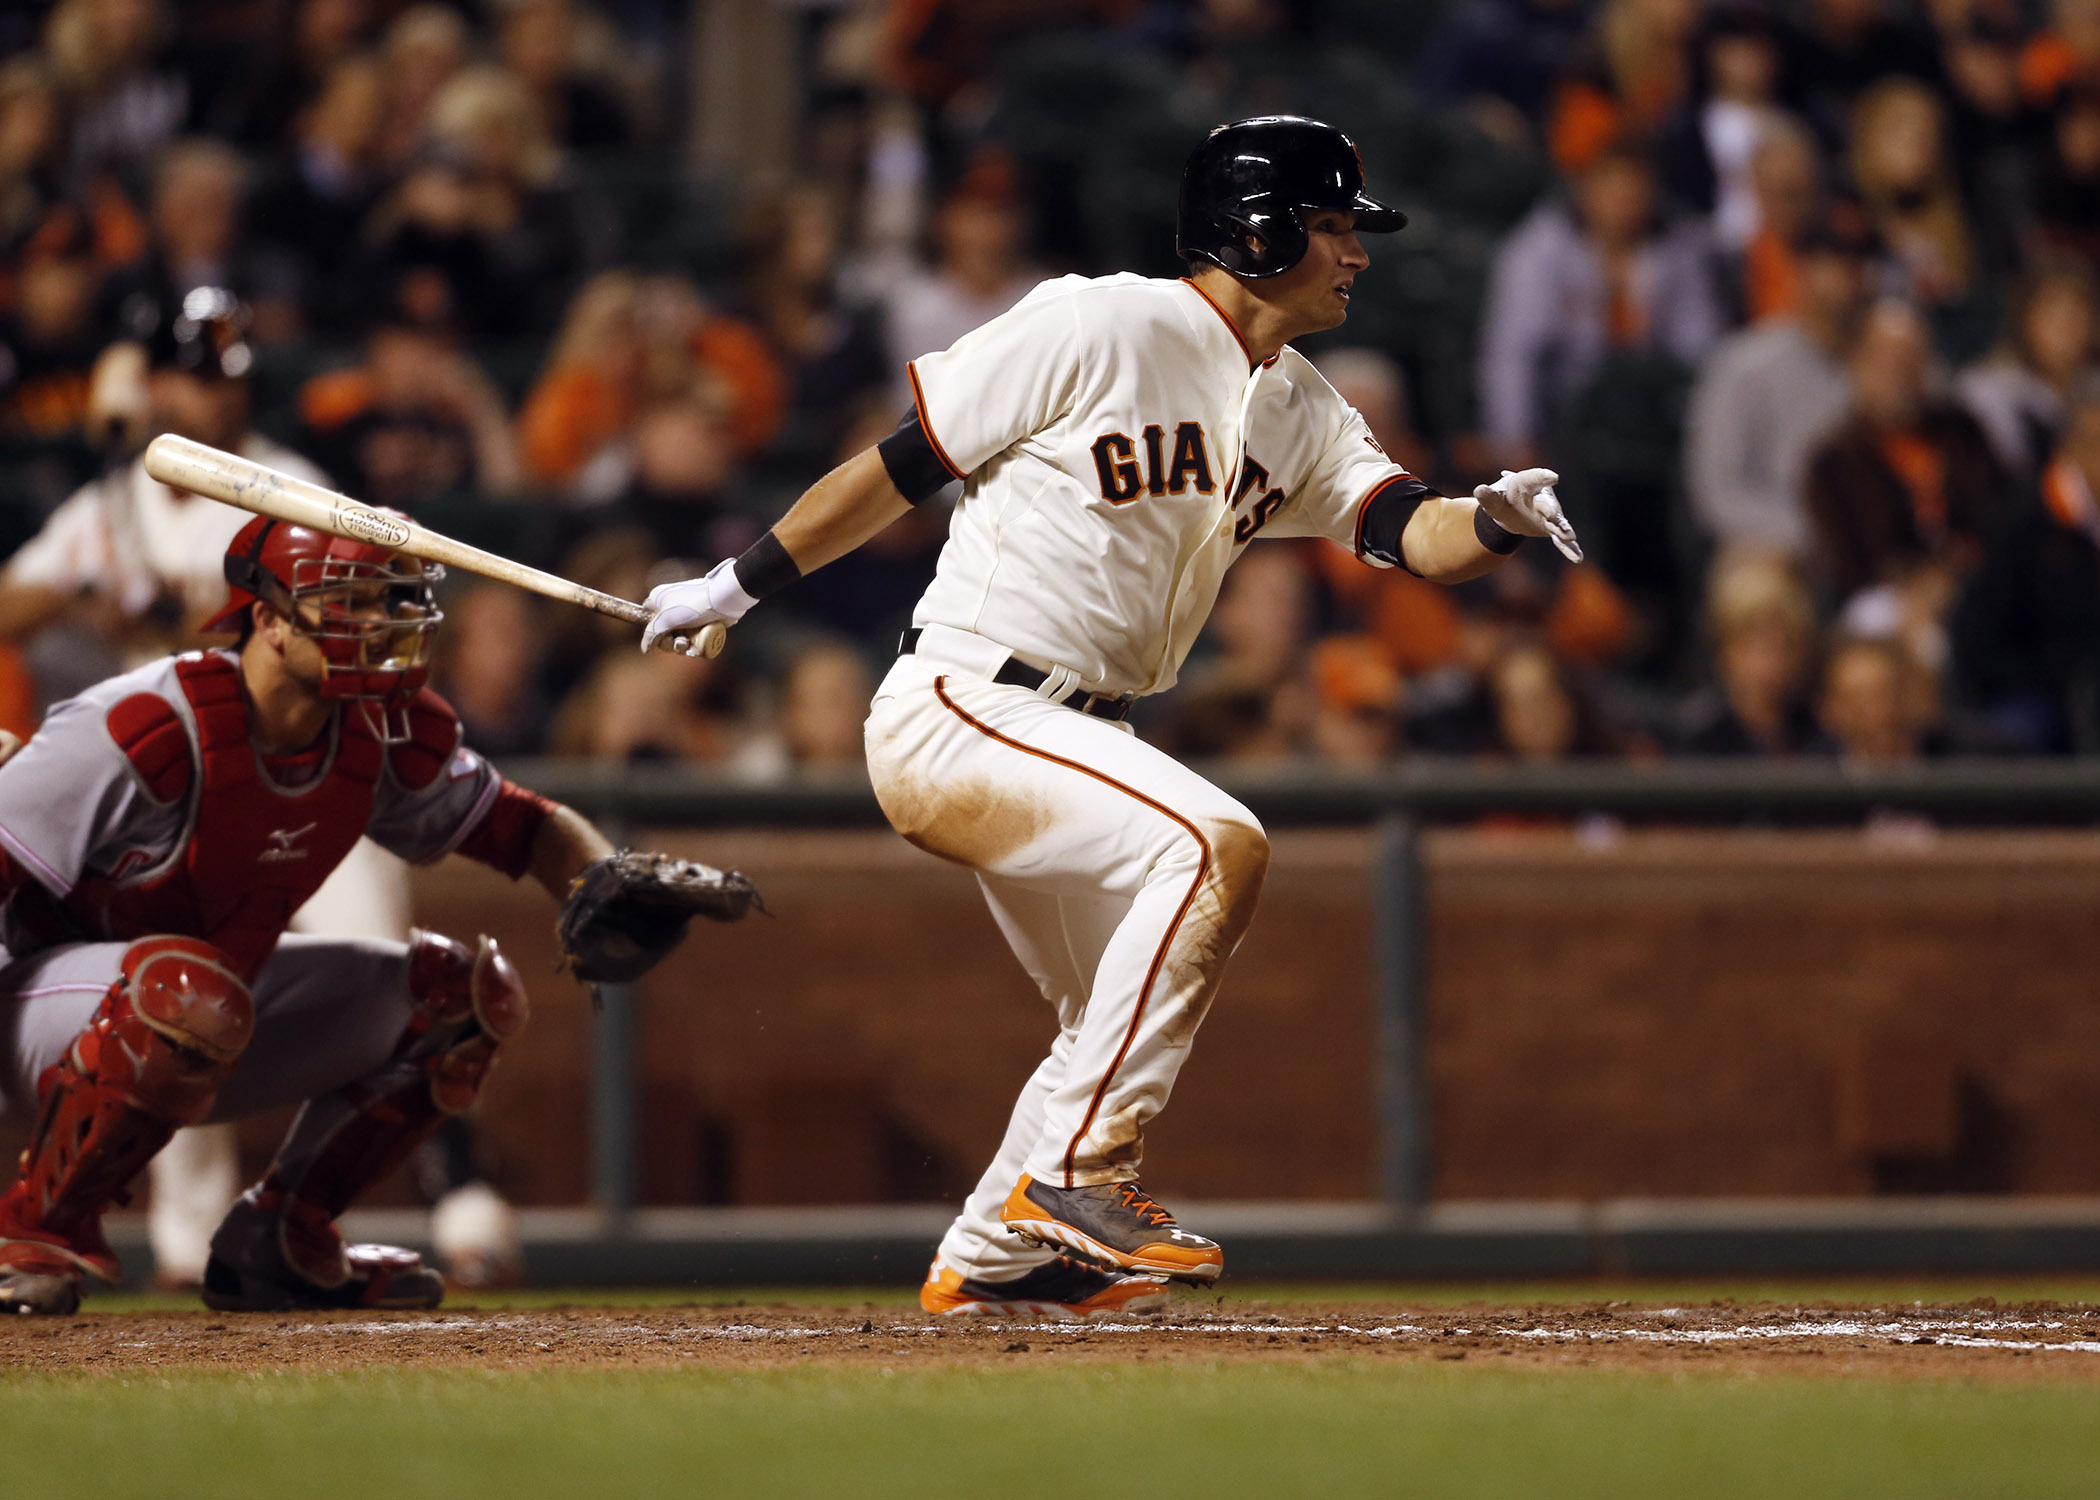 Joe Panik finished with 17 hits in the postseason, tied for fifth-most all-time among MLB rookies.